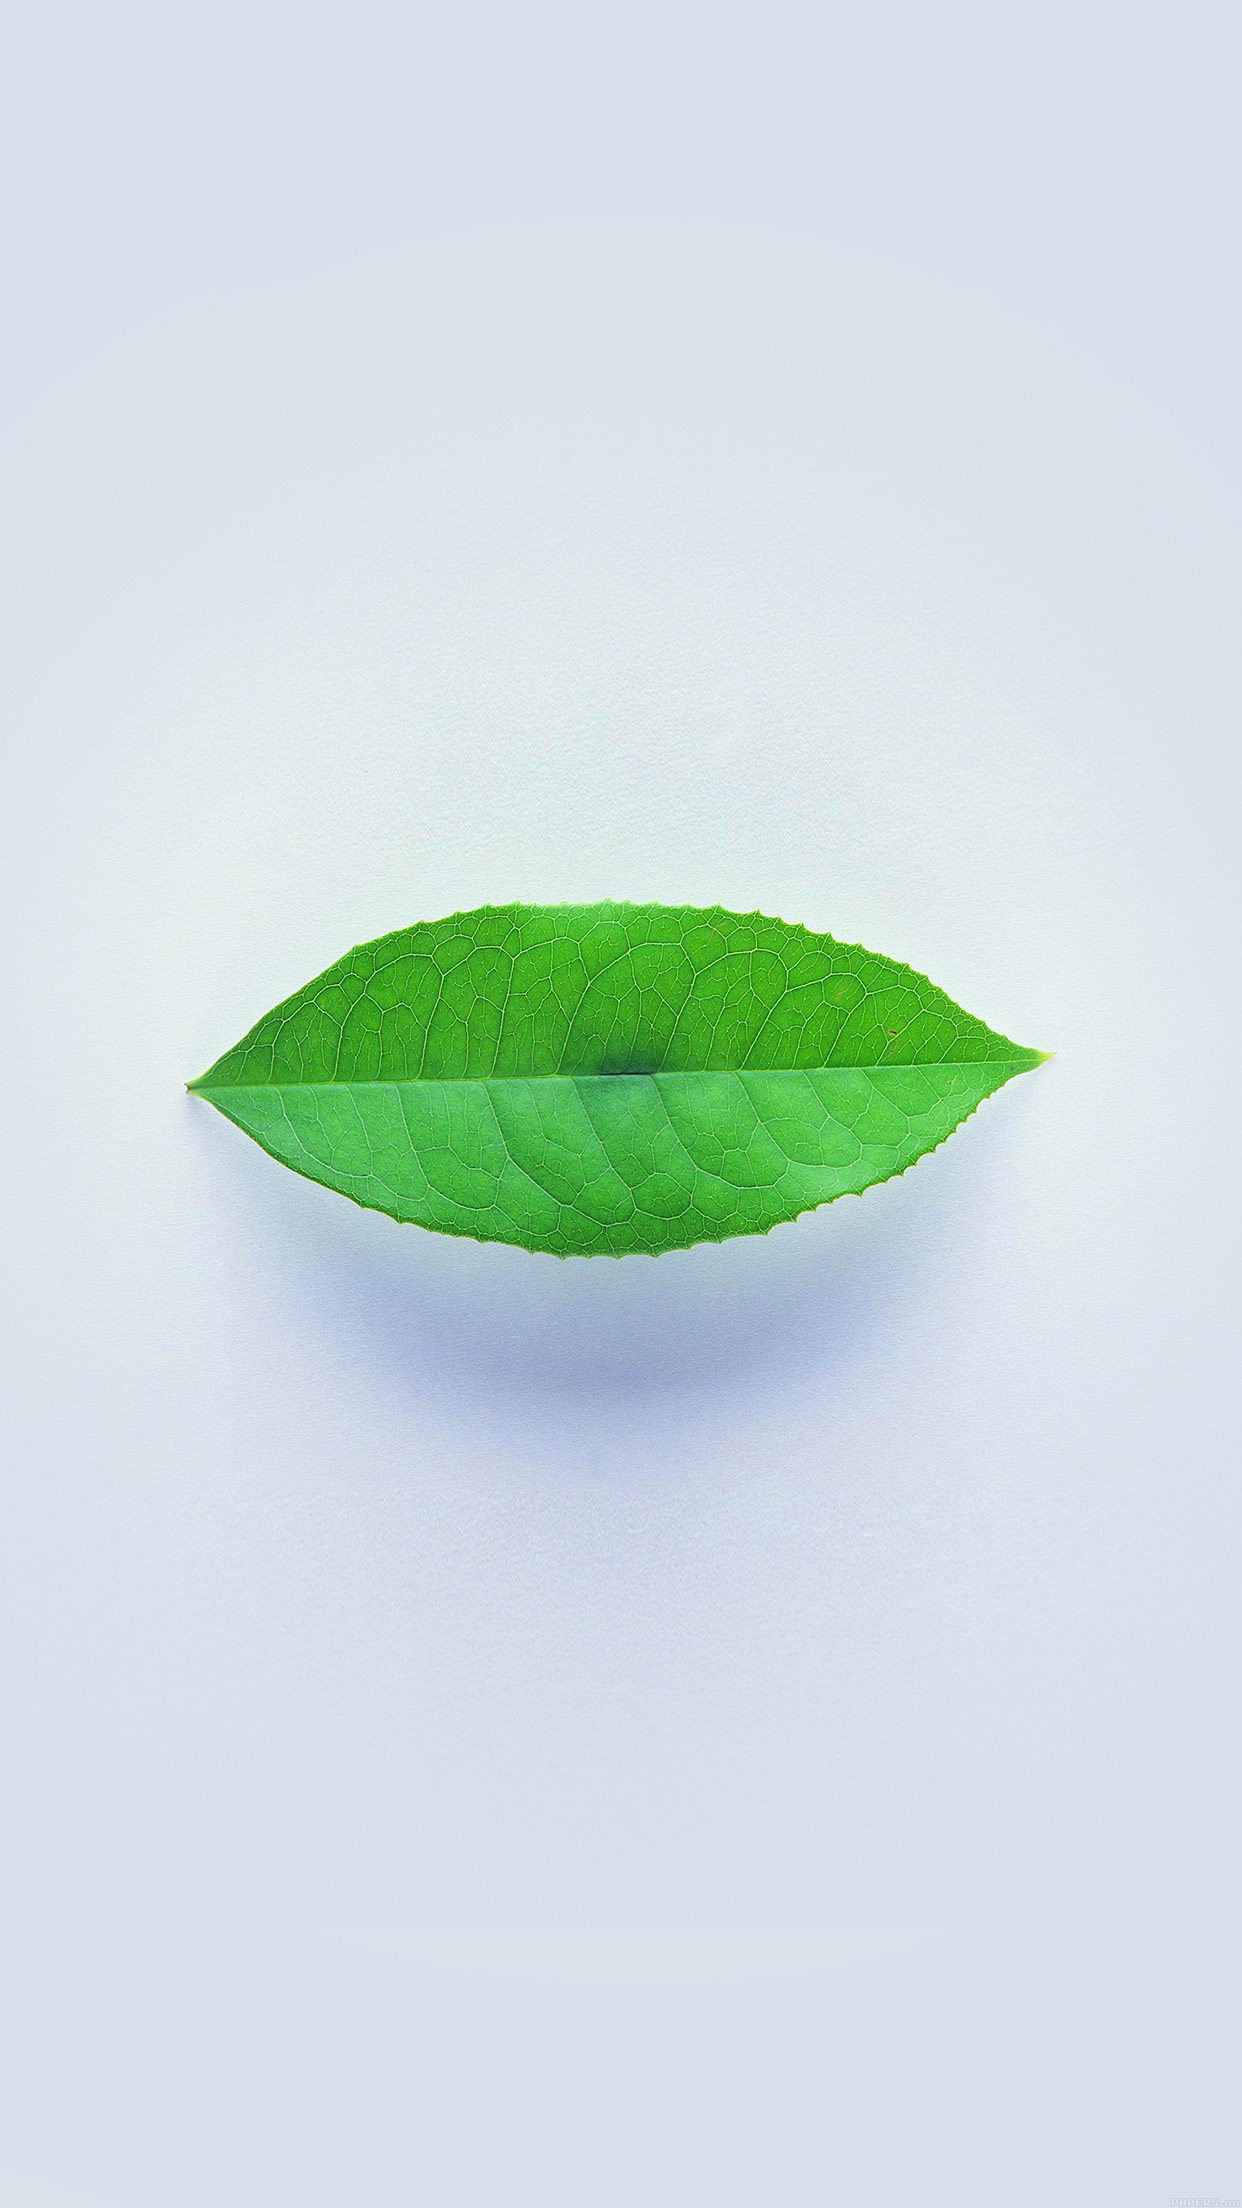 Simple Green Leaf Minimal.jpg